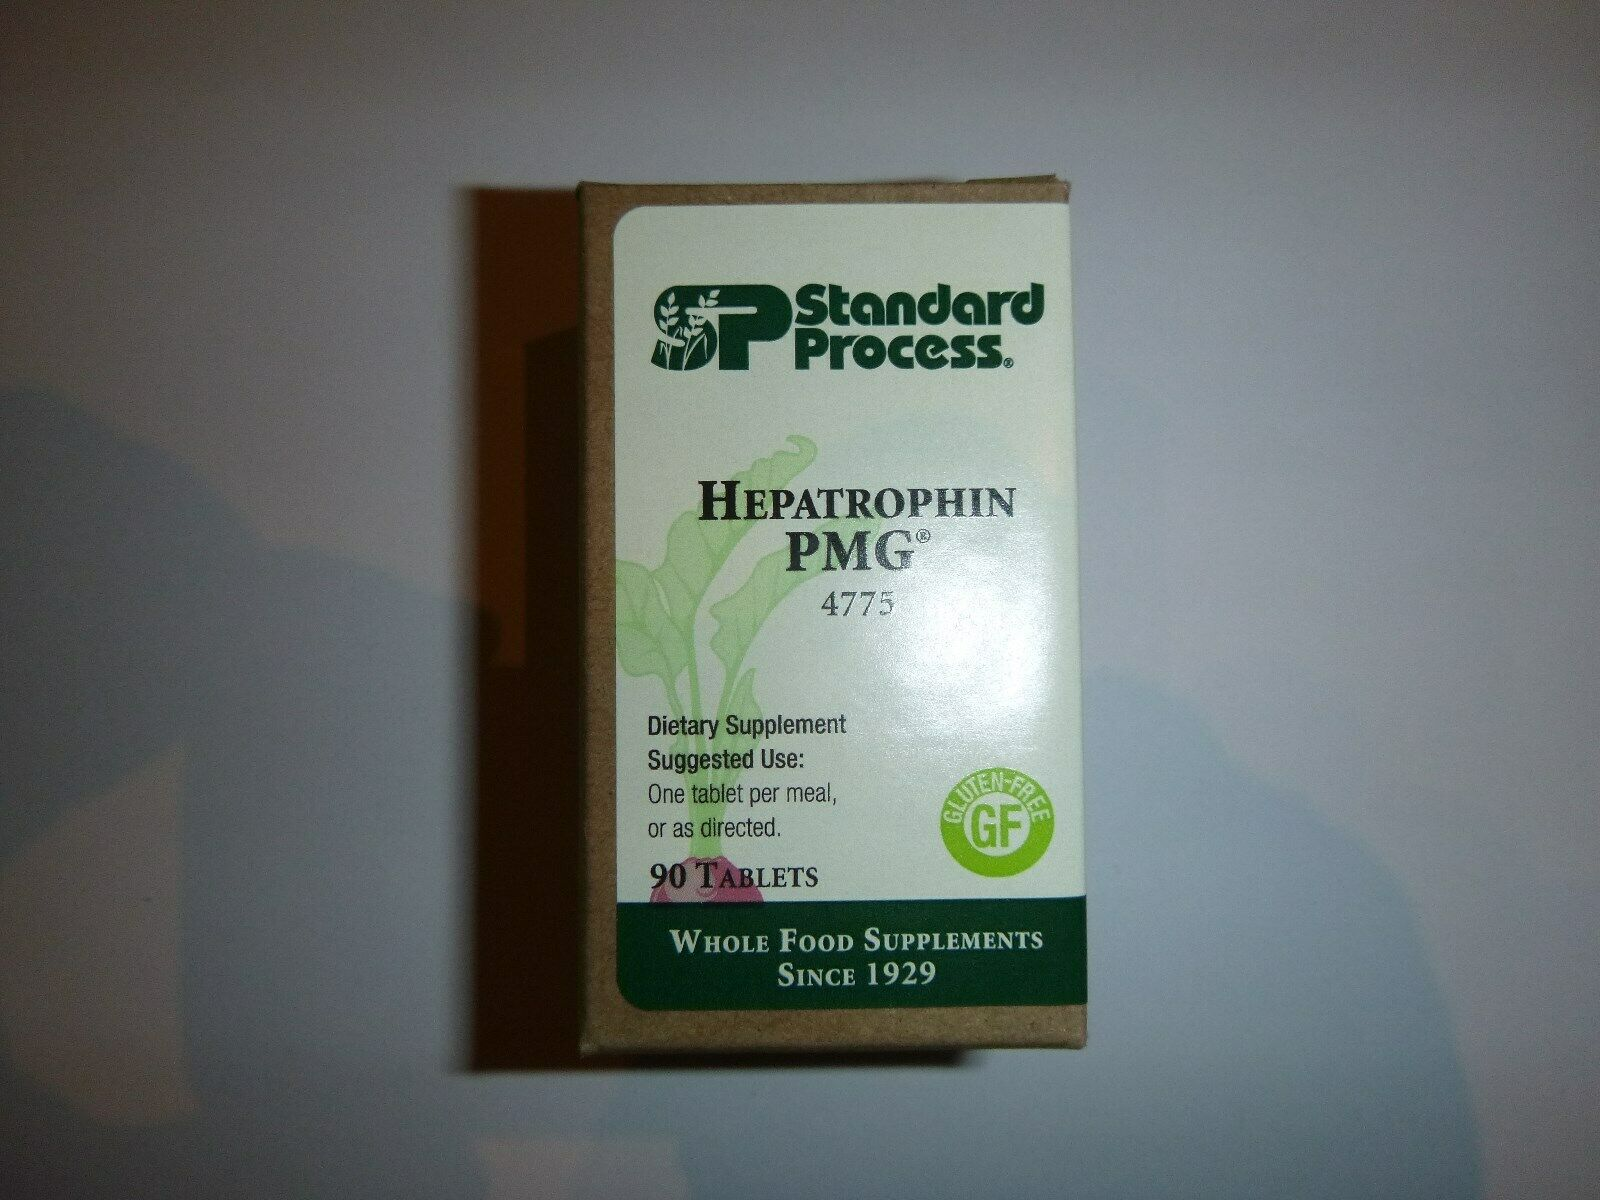 Standard Process HEPATROPHIN PMG 90T  * Exp 11/21  * SHIPS WITHIN 24 HOURS FREE!